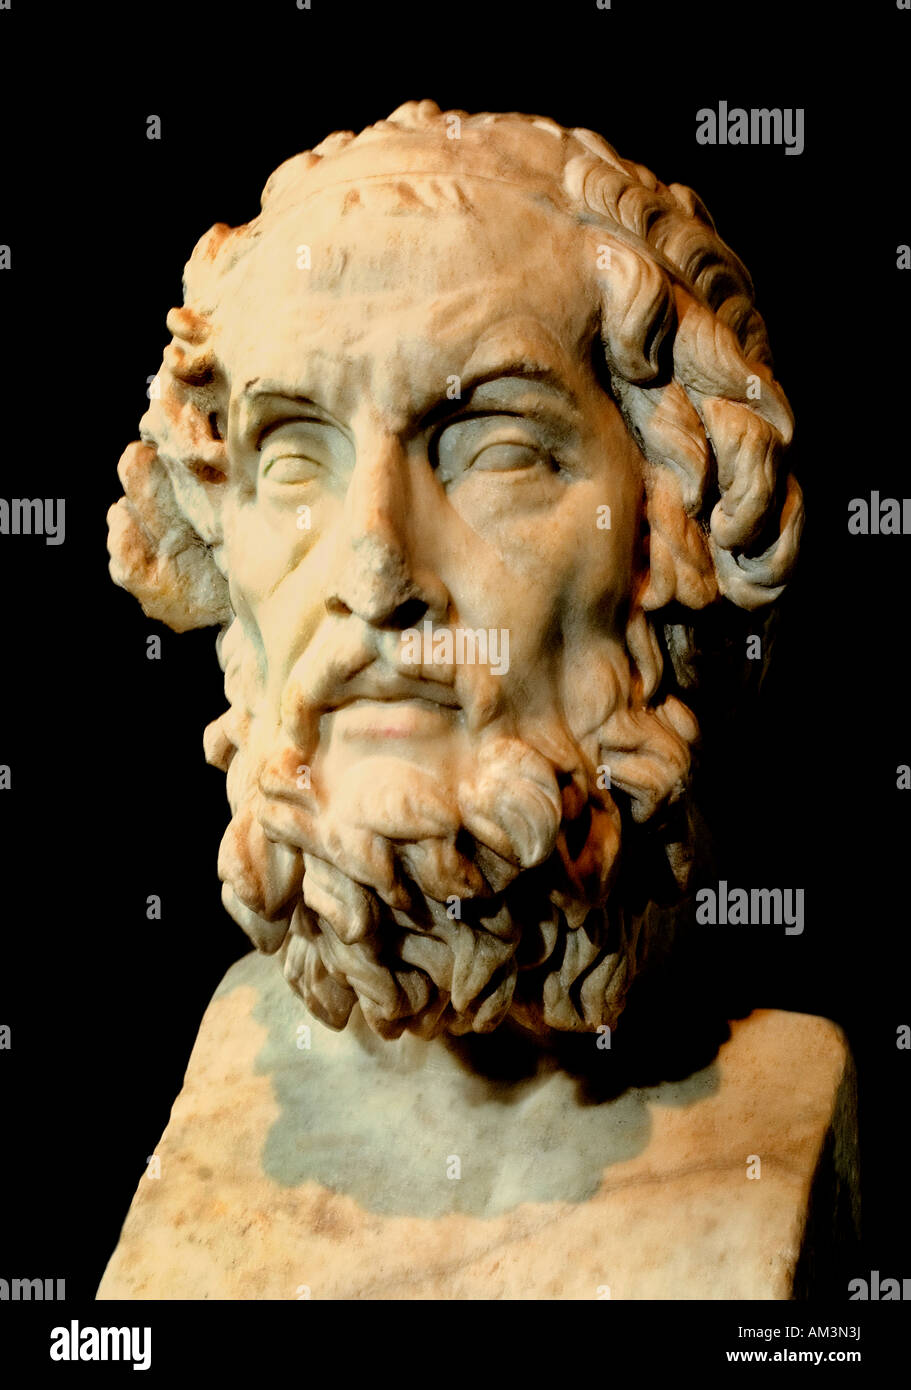 a biography of heraclitus an ancient greek philosopher Enjoy the best heraclitus quotes at brainyquote quotations by heraclitus, greek philosopher, born 544 bc share with your friends.